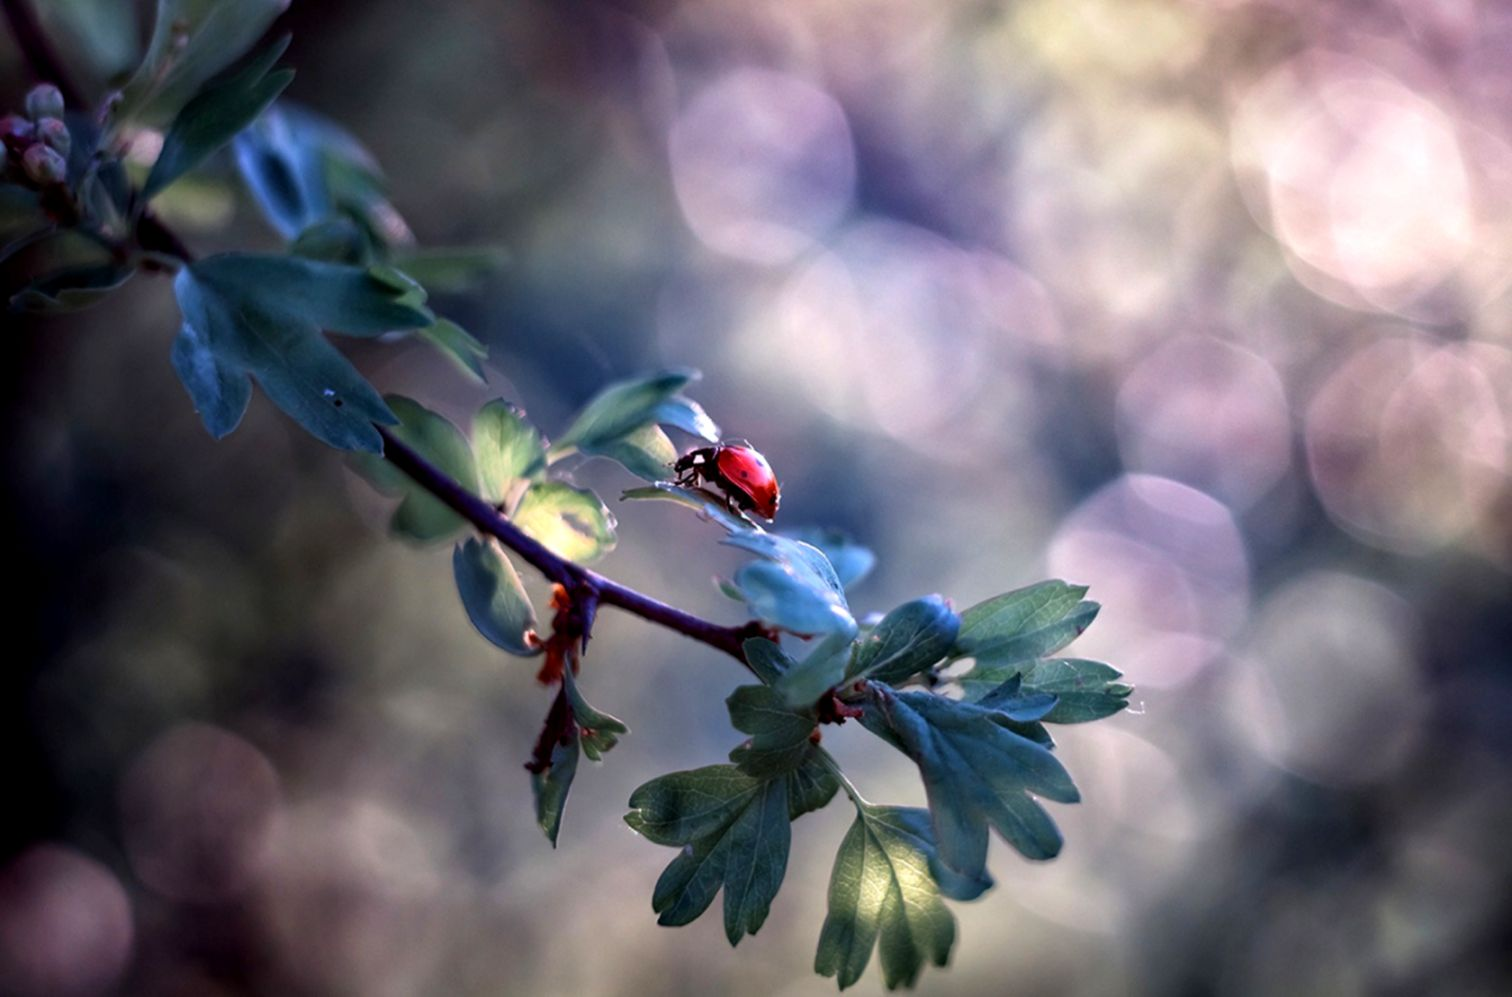 ladybug insect branch bokeh hd wallpaper | best wallpapers hd gallery